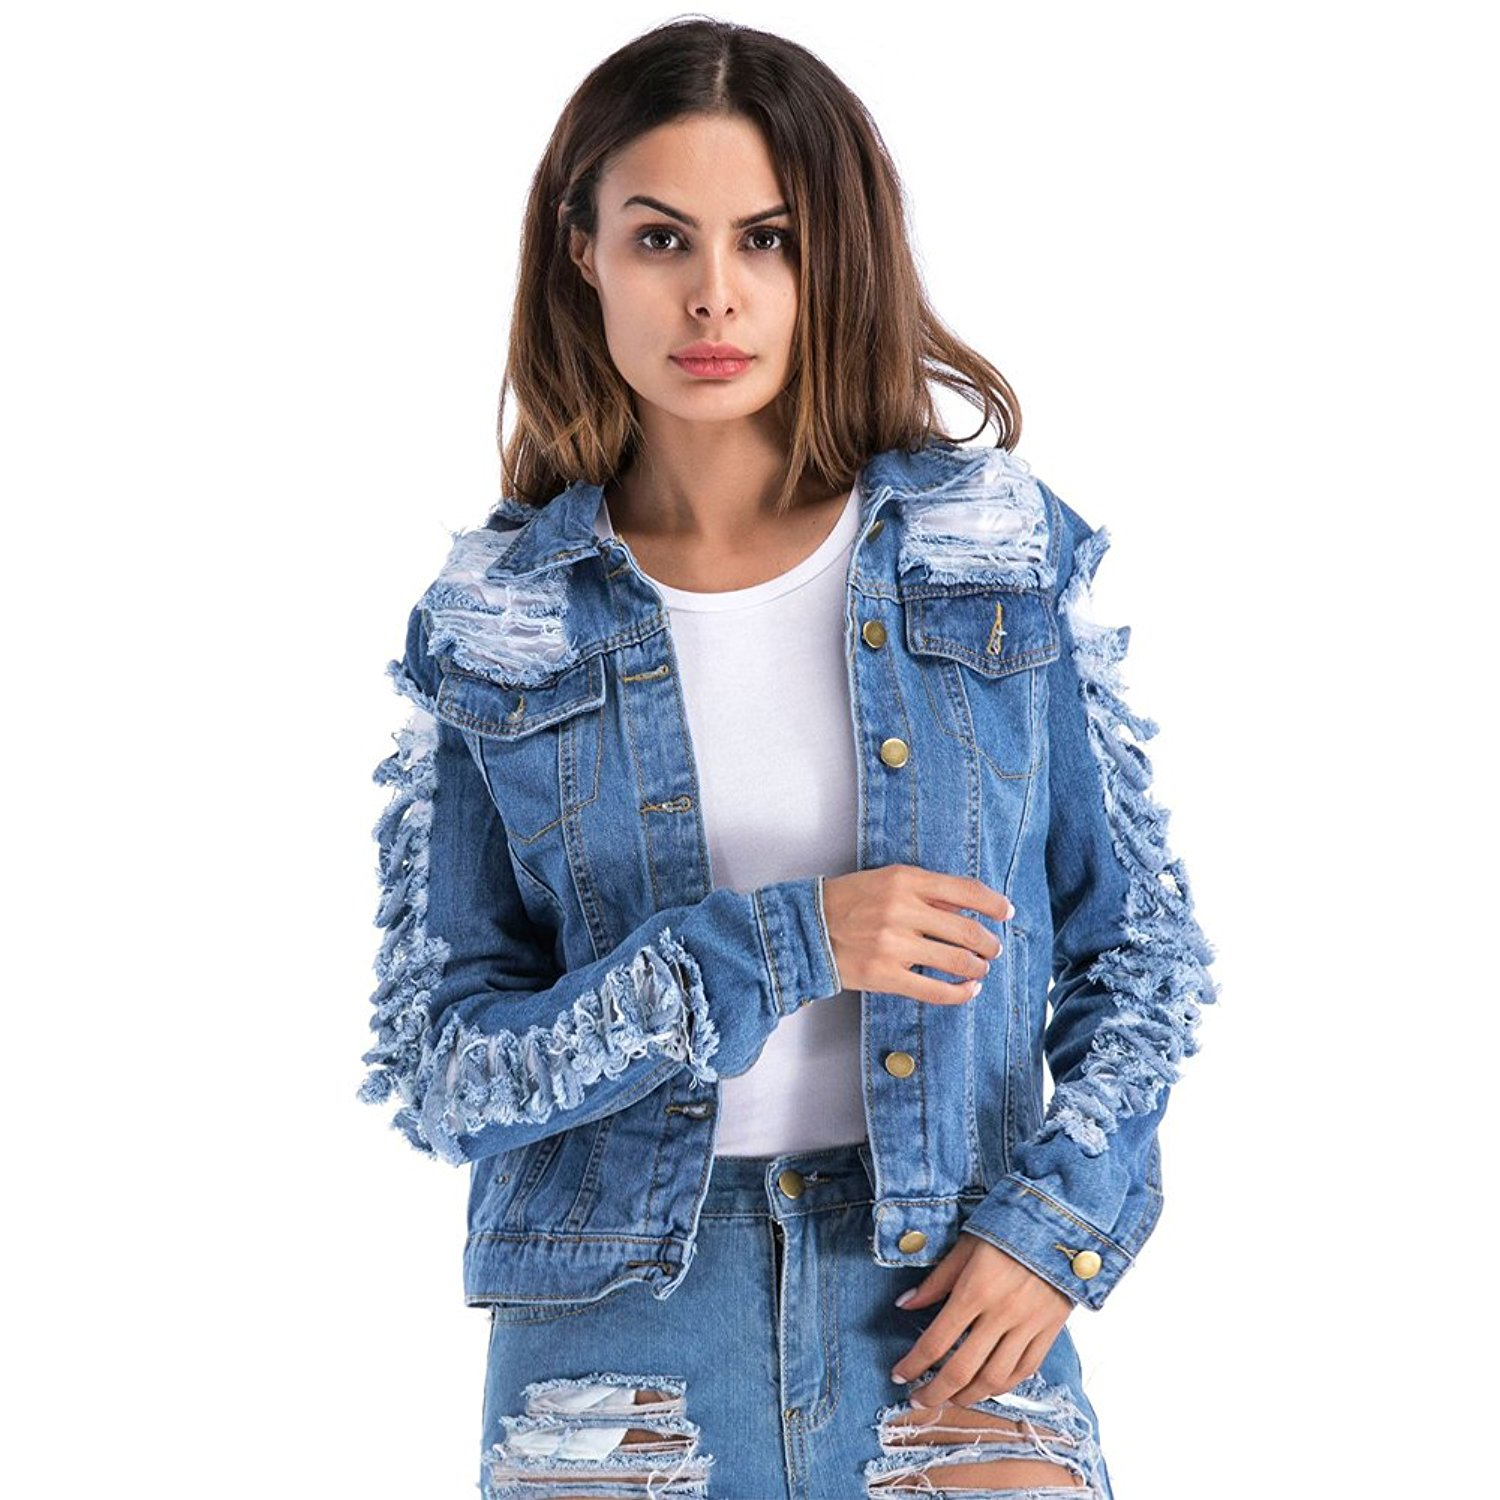 326c6098763 Get Quotations · VICVIK Womens Blue Distressed Button Long Sleeve Denim  Jean Jacket Coat with Pockets Regular and Plus